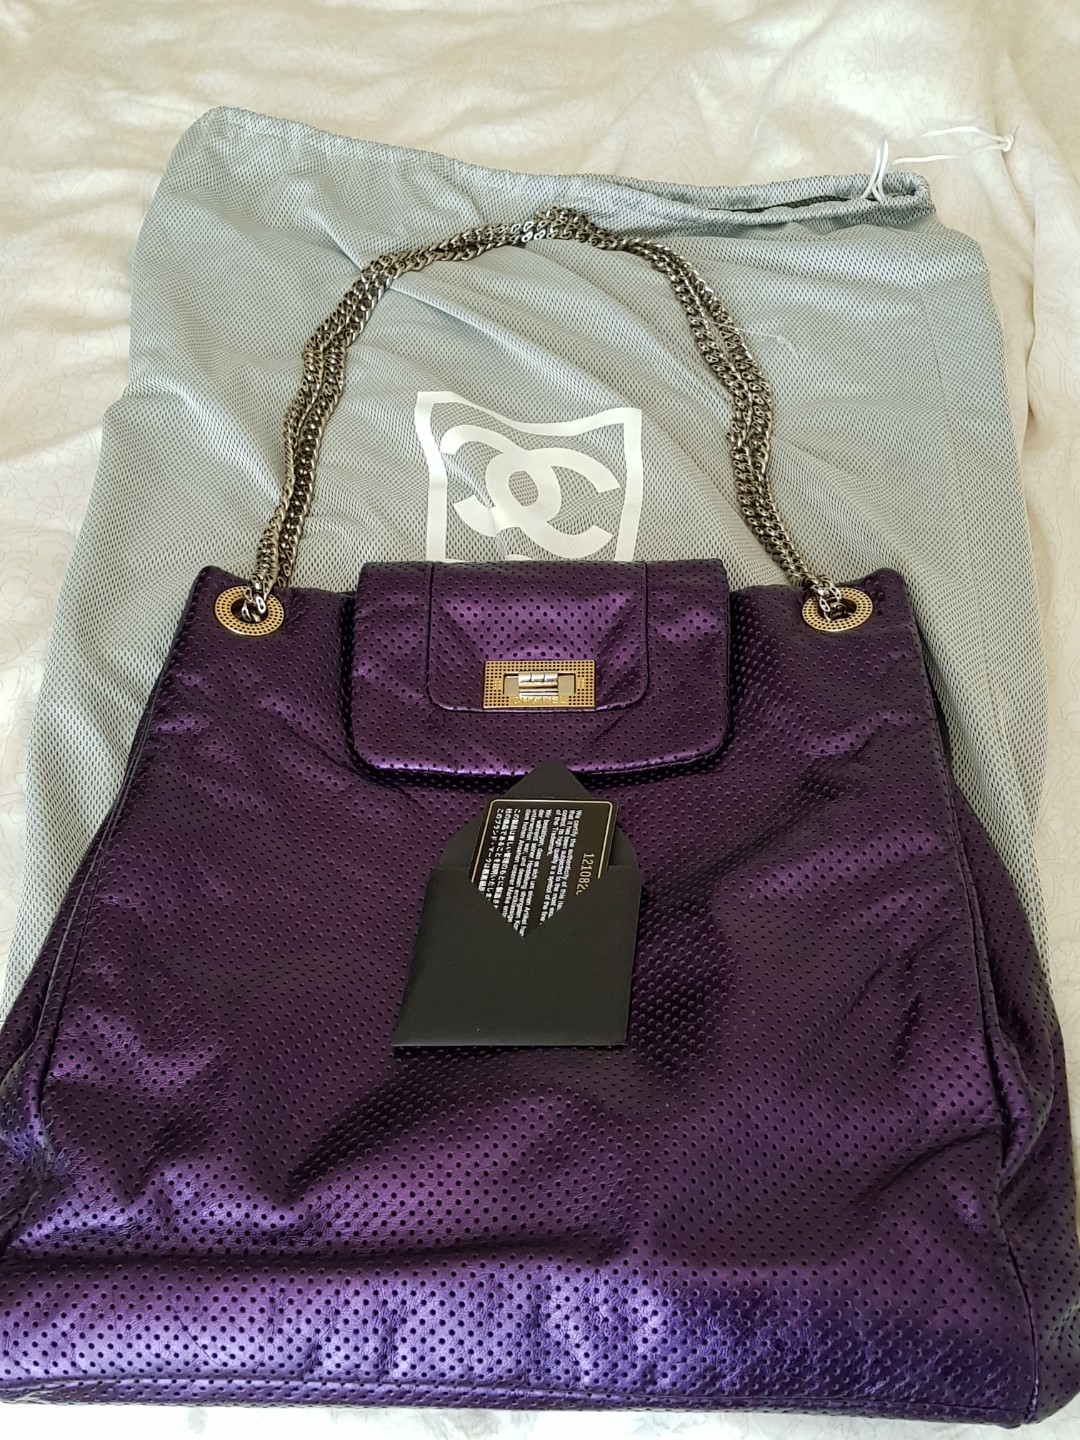 672fe84fdc19 Authentic Chanel Bag, Luxury, Bags & Wallets, Sling Bags on Carousell